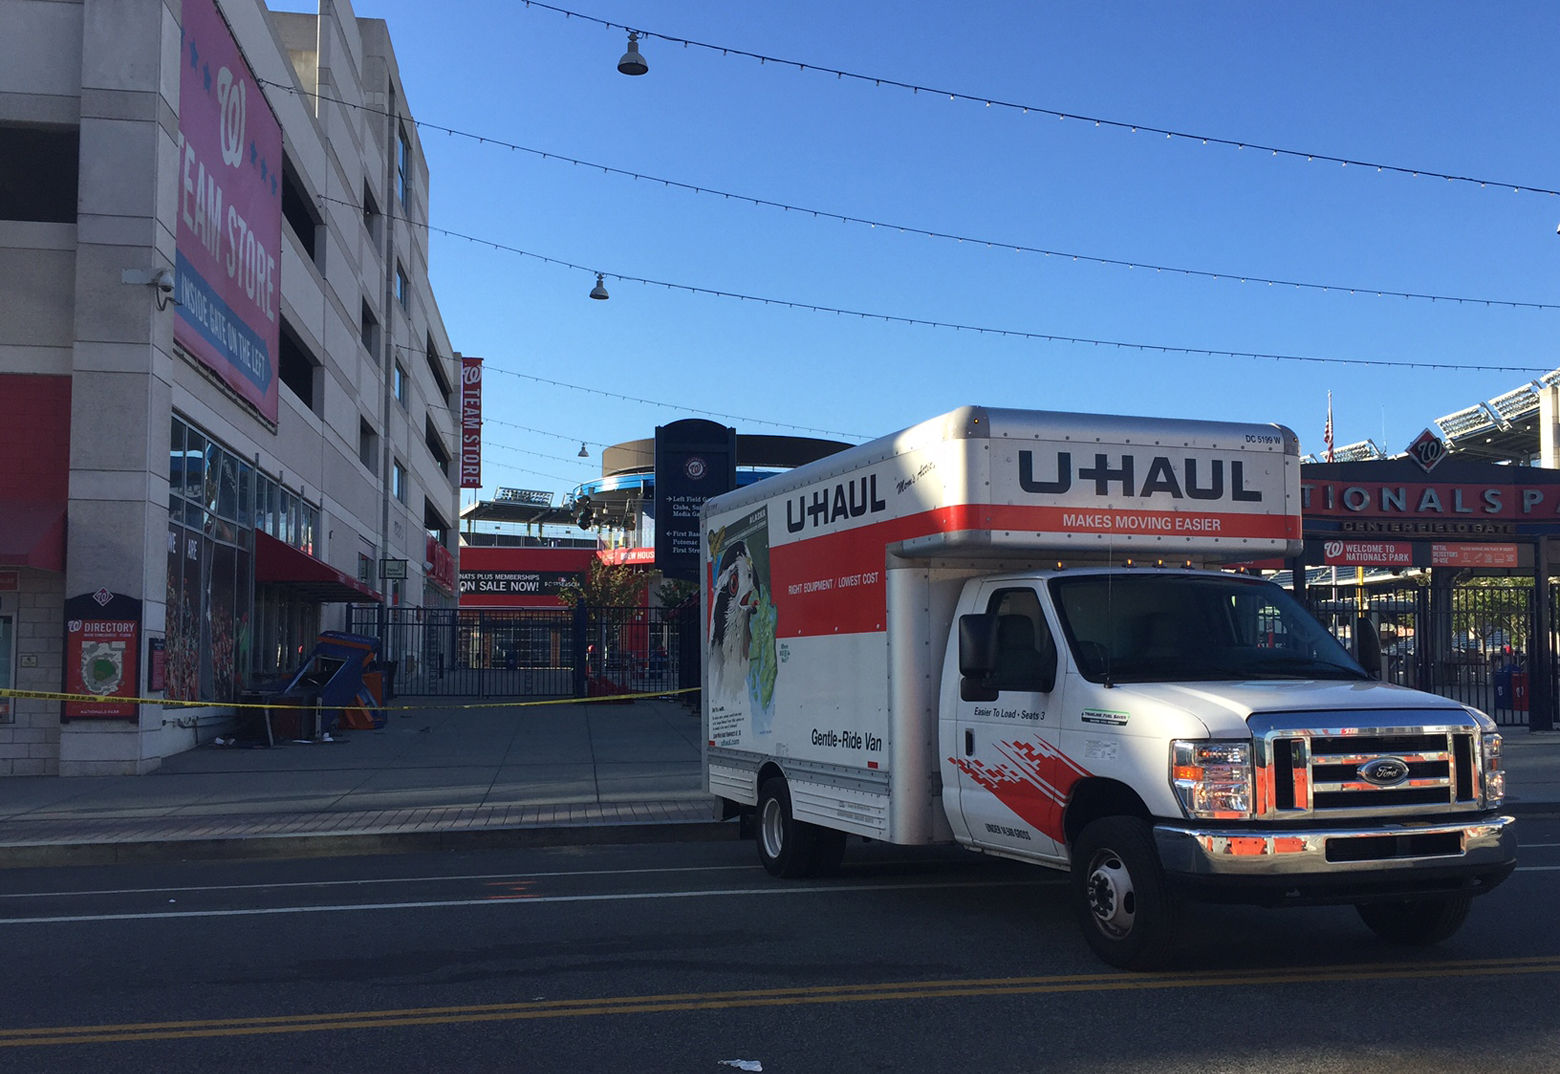 Photo shows a U-Haul moving truck in front of Nationals Stadium